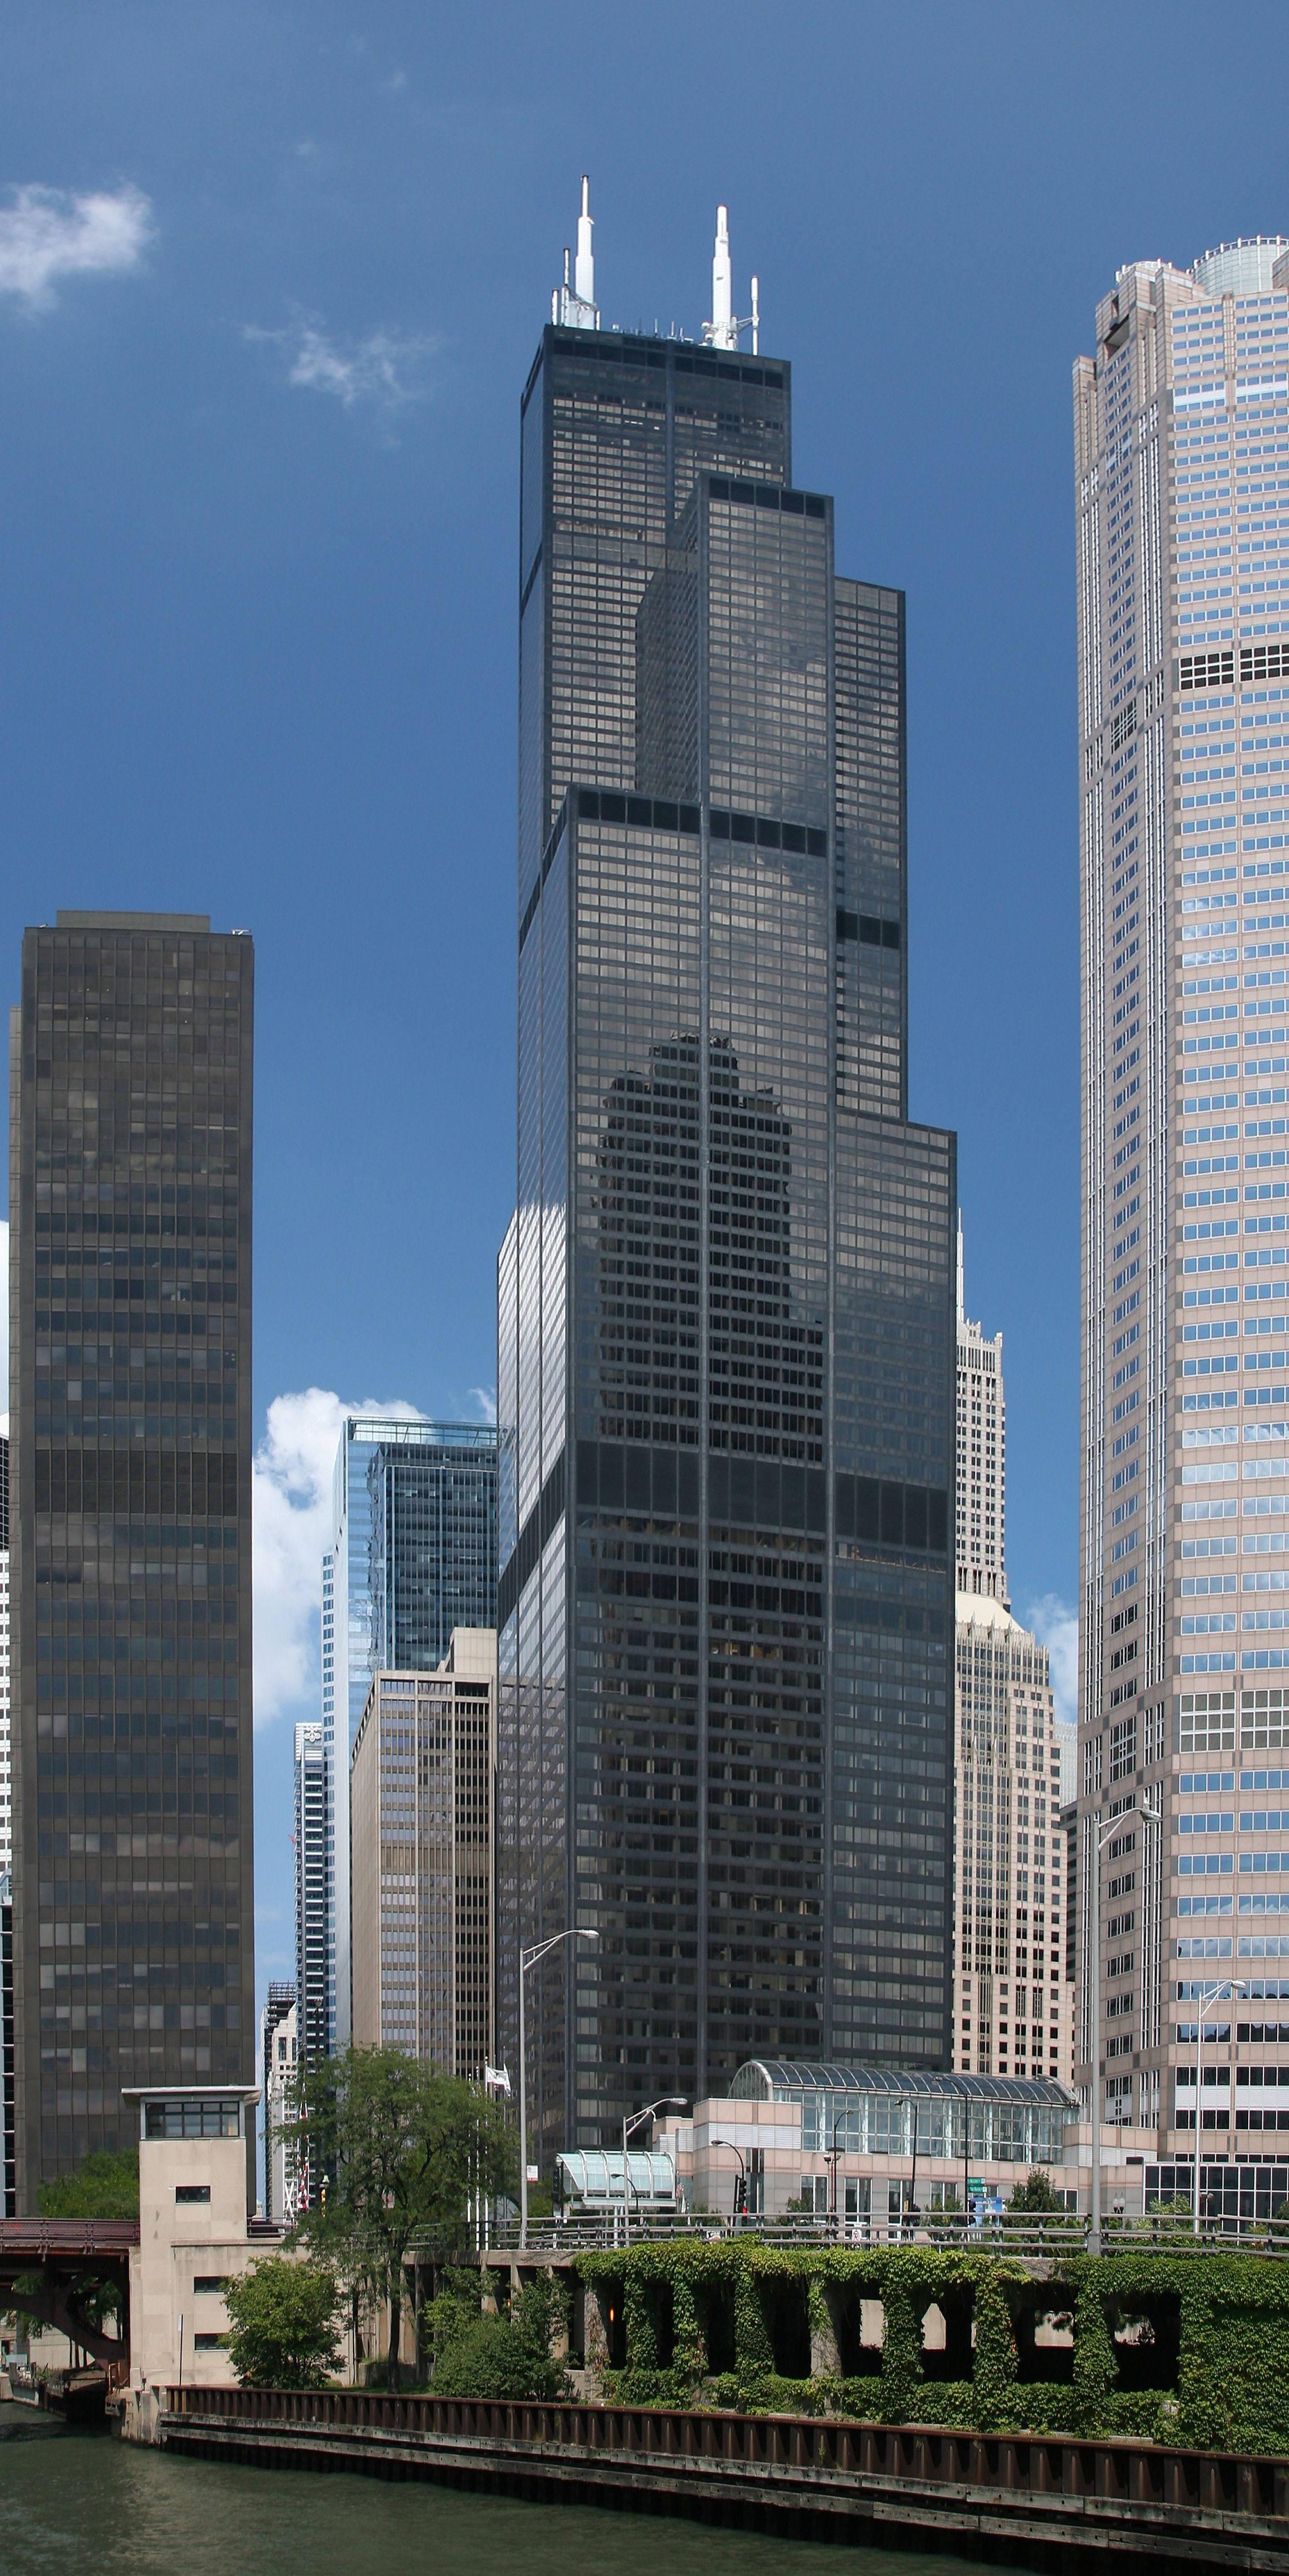 Sears Tower In Chicago Illinois. Top Travel - Places 've 2019